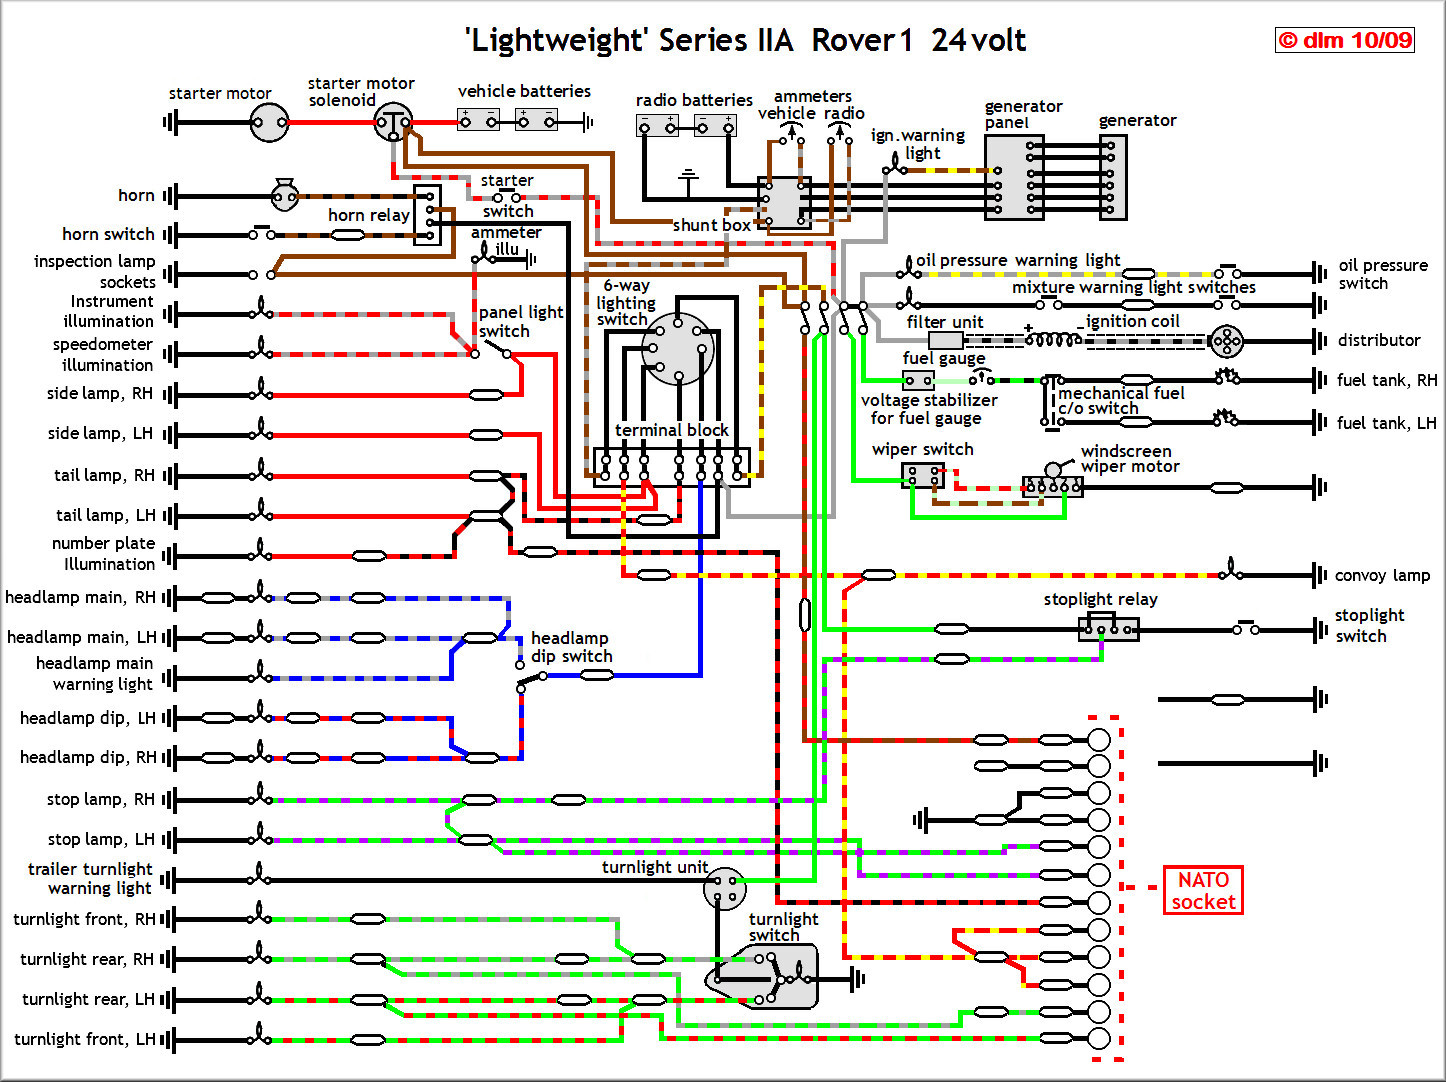 rover1 24Av land rover lightweight Series Speaker Wiring Diagram at reclaimingppi.co